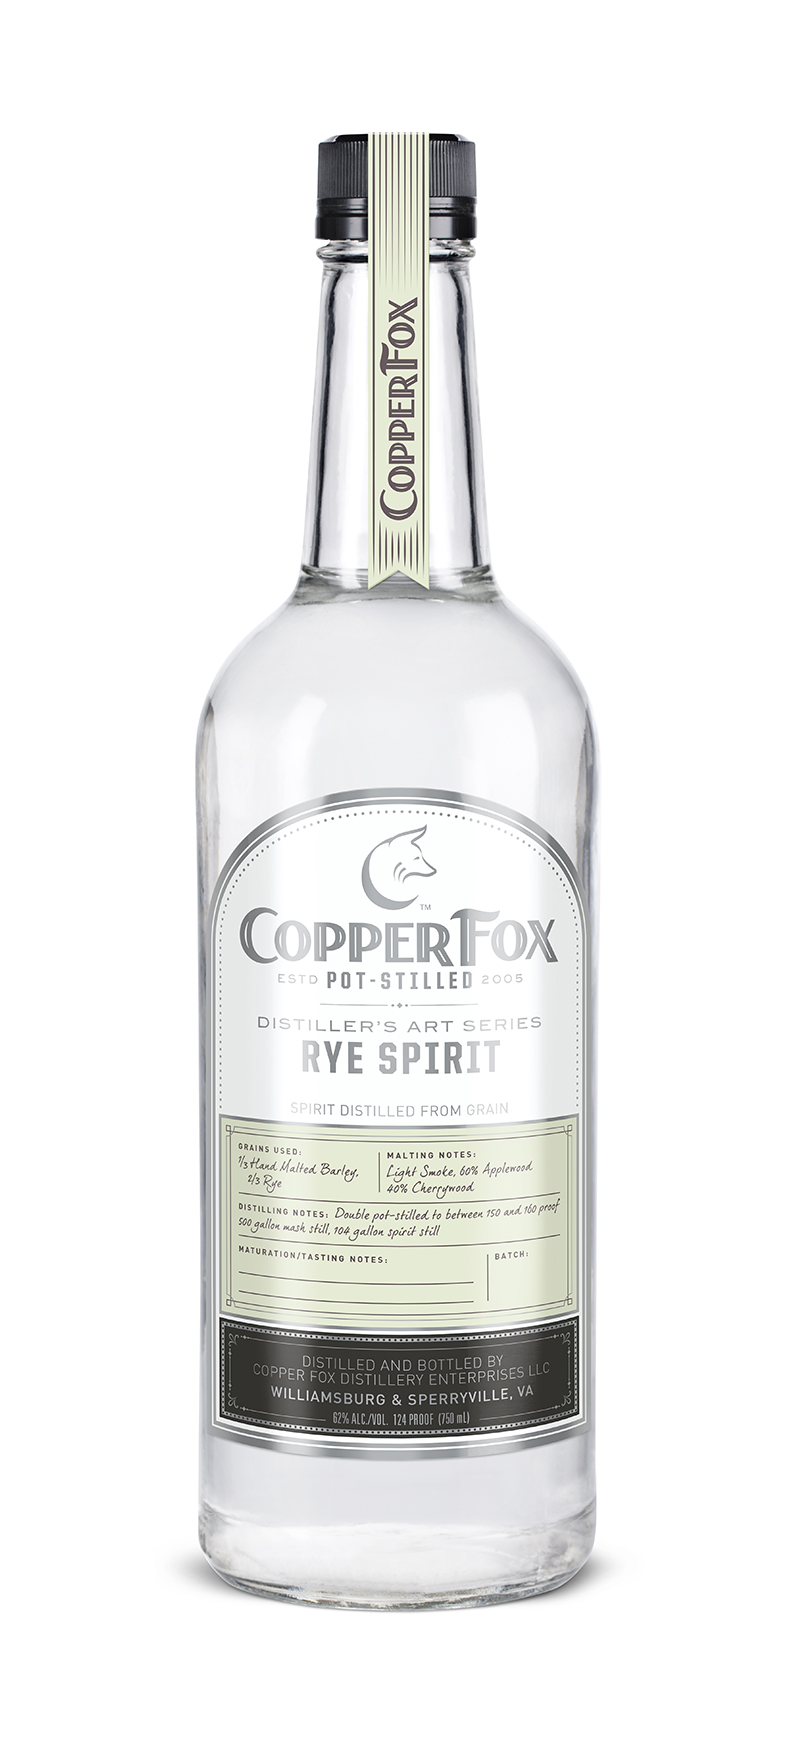 "COPPER FOX RYE SPIRIT - The second release in our innovative ""Distiller's Art Series,"" this clear spirit is our Gold Medal award winning Copper Fox Rye Whisky, bottled at barrel strength prior to aging. Our spirit is hand crafted from 2/3 Virginia rye and 1/3 Thoroughbred barley developed and grown locally, exclusively for Copper Fox Distillery.Unlike neutral grain spirits, which are distilled at 190 proof and above, our spirits are hand crafted and carefully distilled at just under 160 proof, utilizing a process which allows the complete essence and flavor of the barley grain to come through.Enjoy this Rye Spirit as a foundation for creating marvelous cocktails; substituting it for many other spirits in your favorite recipes. In addition, we invite you to replicate the aging process at home in our new lightly charred American white oak barrels. The cask strength (124 proof) spirit is the best strength to optimize the reaction of spirit and wood.Subtle toasted almond and ripe apple of the malt, with a gin-like floral sensation and the soft saltiness of a Rappahannock river oyster. End notes of pepper and spice with a surprisingly sweet finish.‹ PreviousBack to GalleryNext ›"